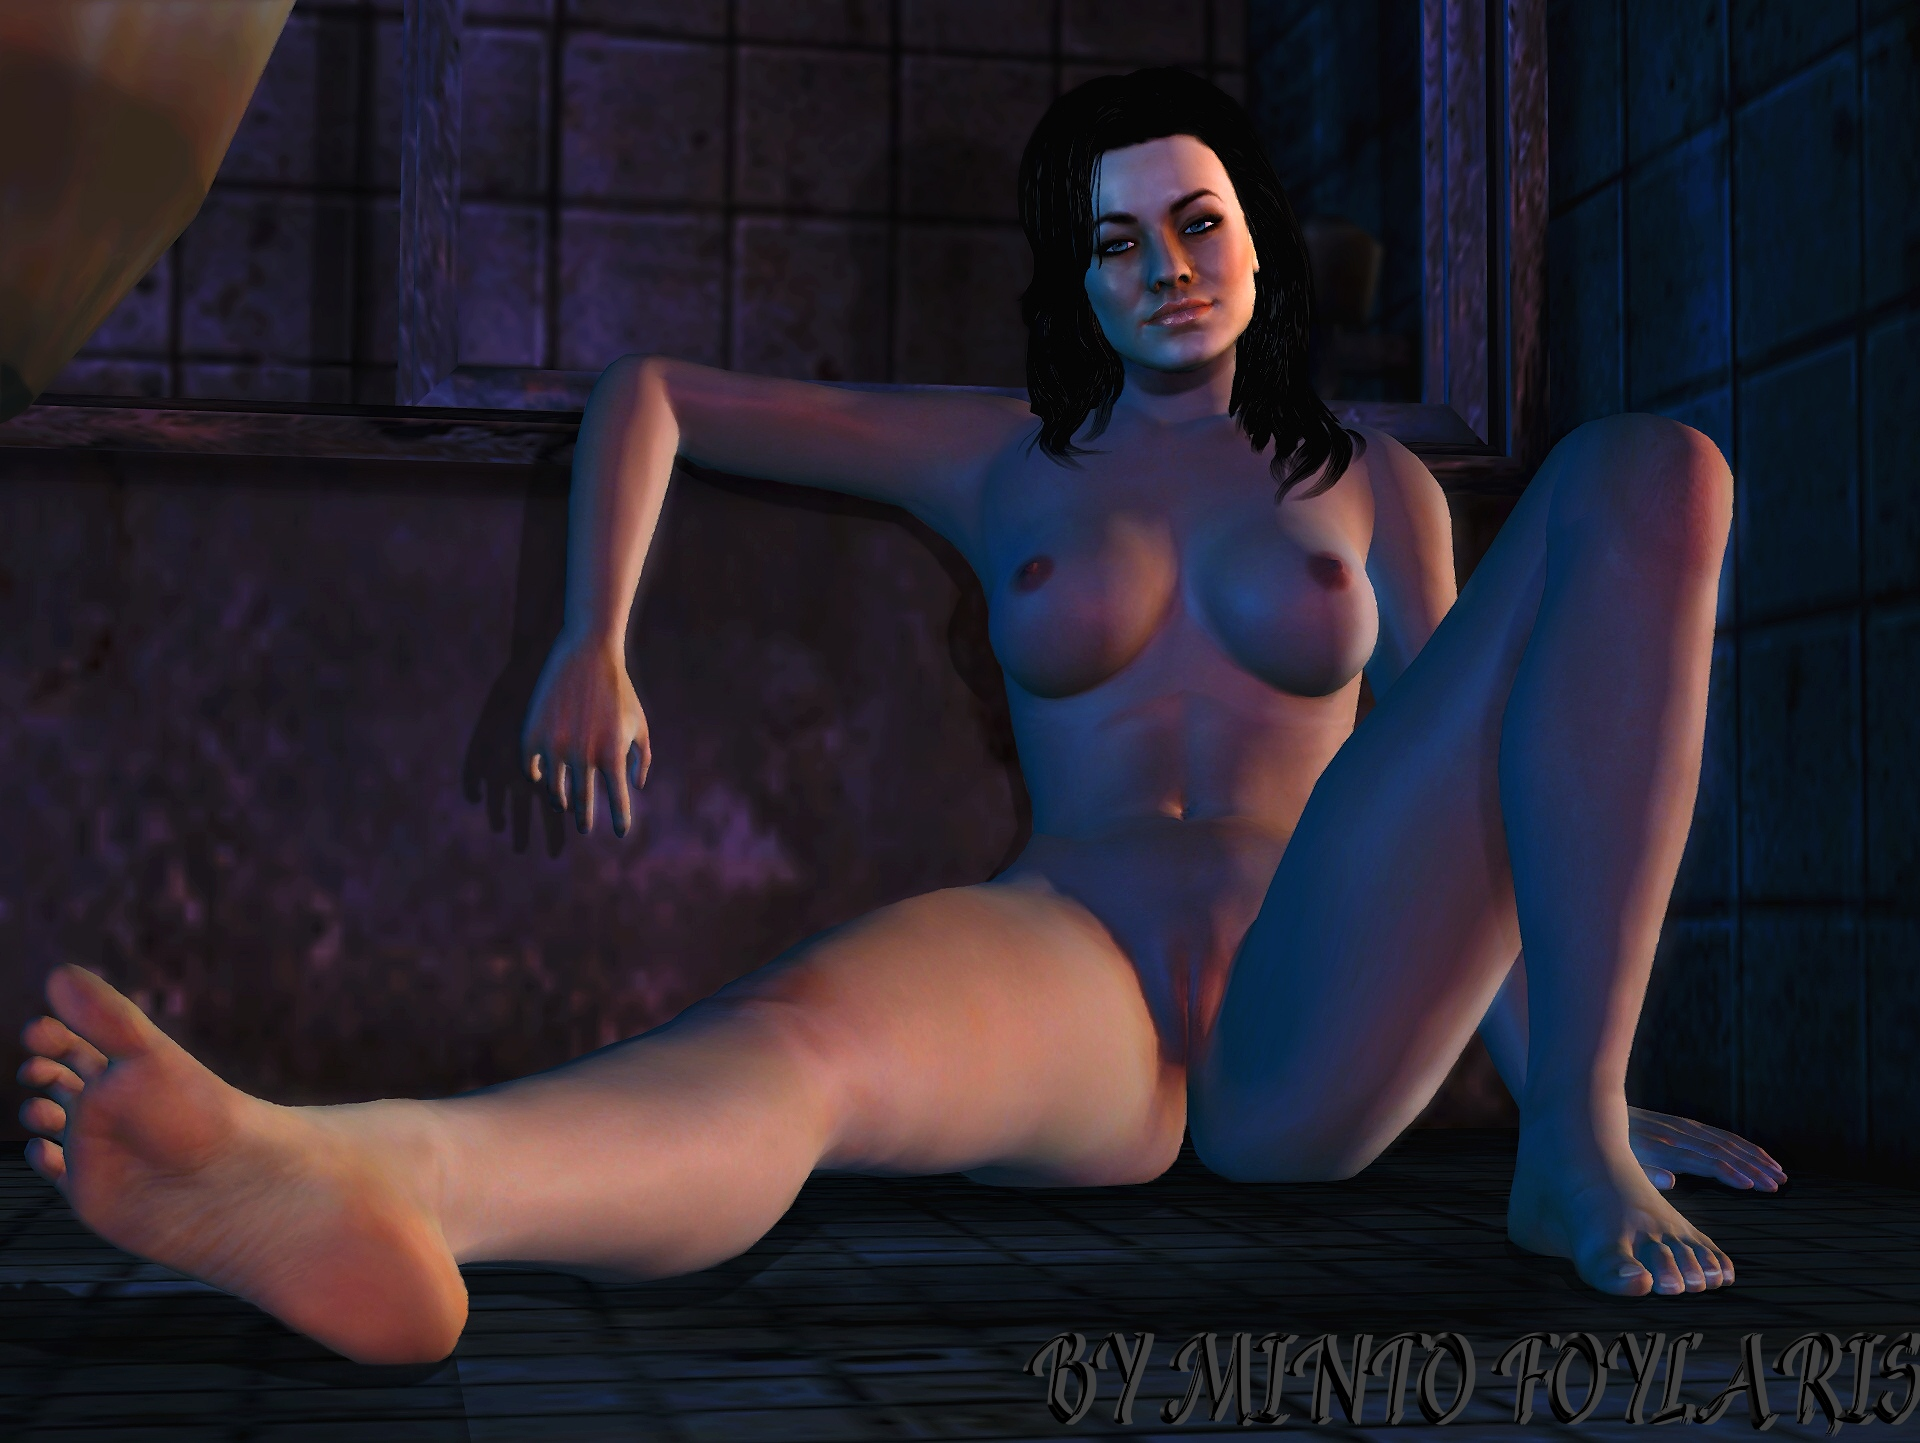 Sexy miranda s ass mass effect 2  sexual pictures